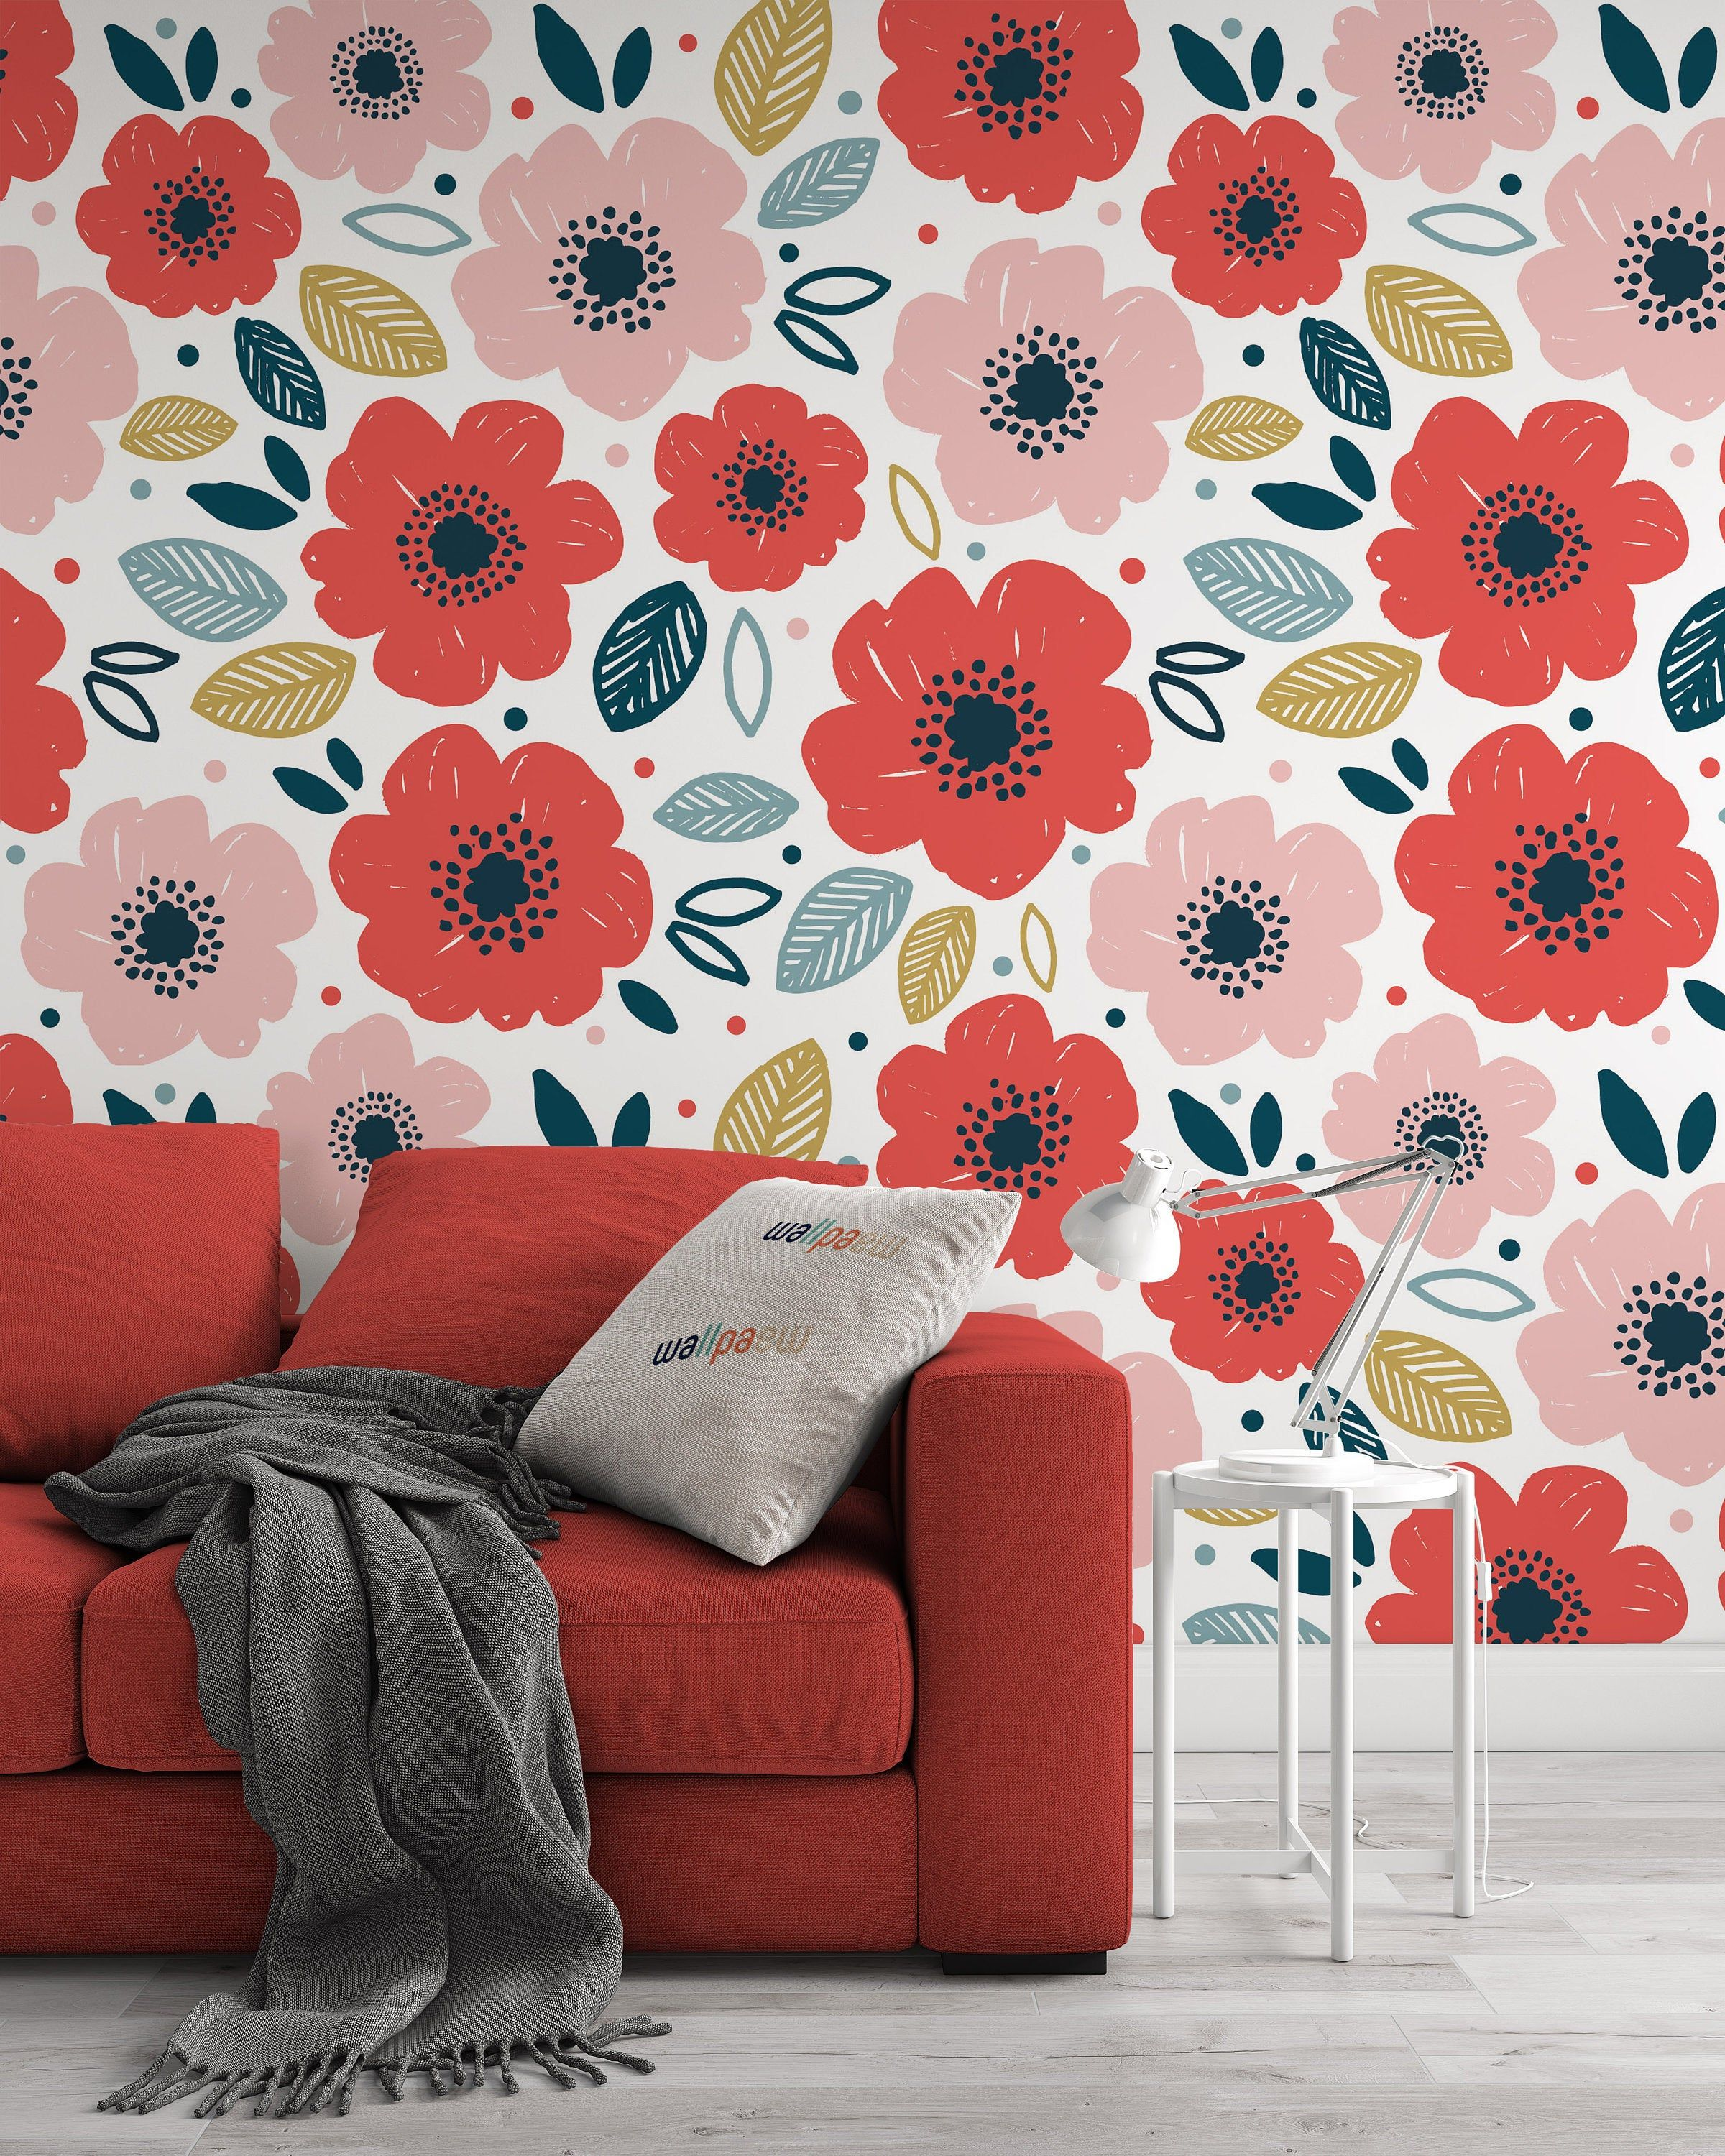 Anemone Red And Pink Flowers Colorful Leaves Background Floral Etsy In 2021 Mural Wall Art Home Wall Art Wall Murals Bedroom